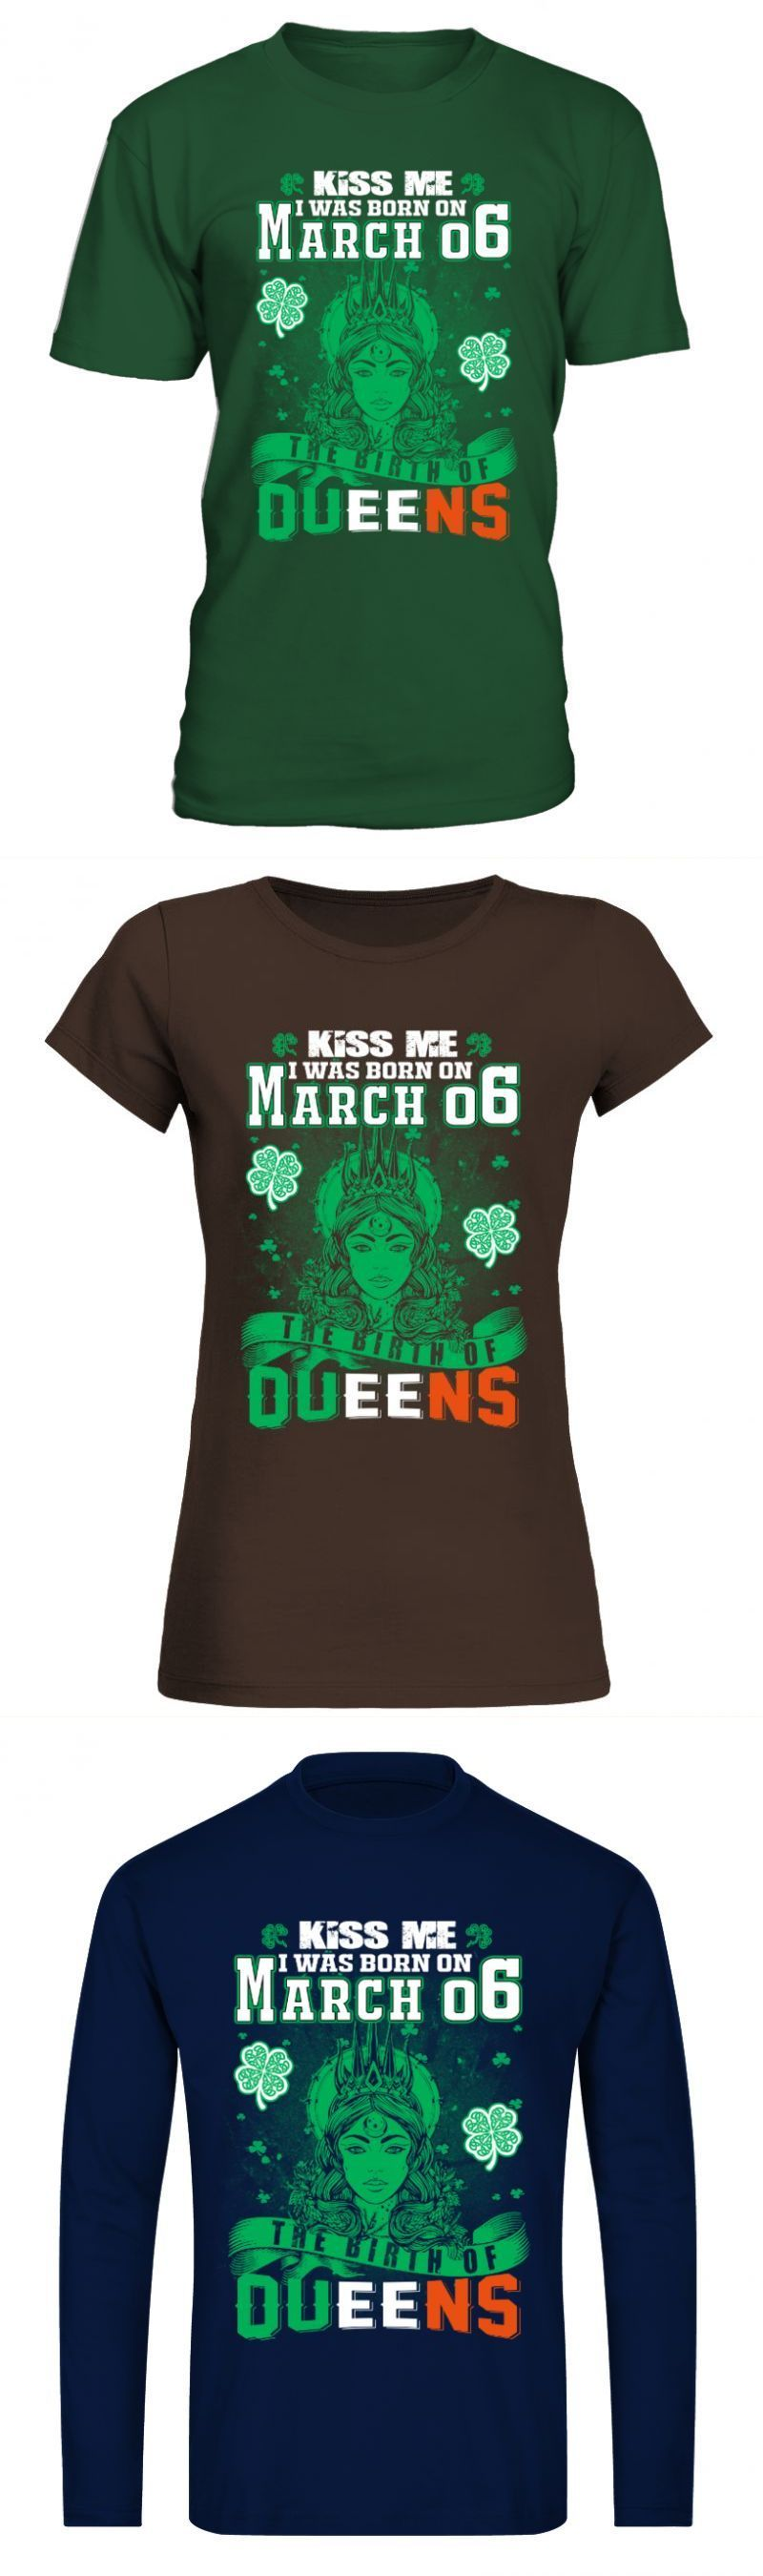 Donic Table Tennis T Shirt Queens Are Born On March 06 T Shirt Tennis De Table Donic Table Tennis Shirt Queens Are Born On Tee Shirts Shirts Handball